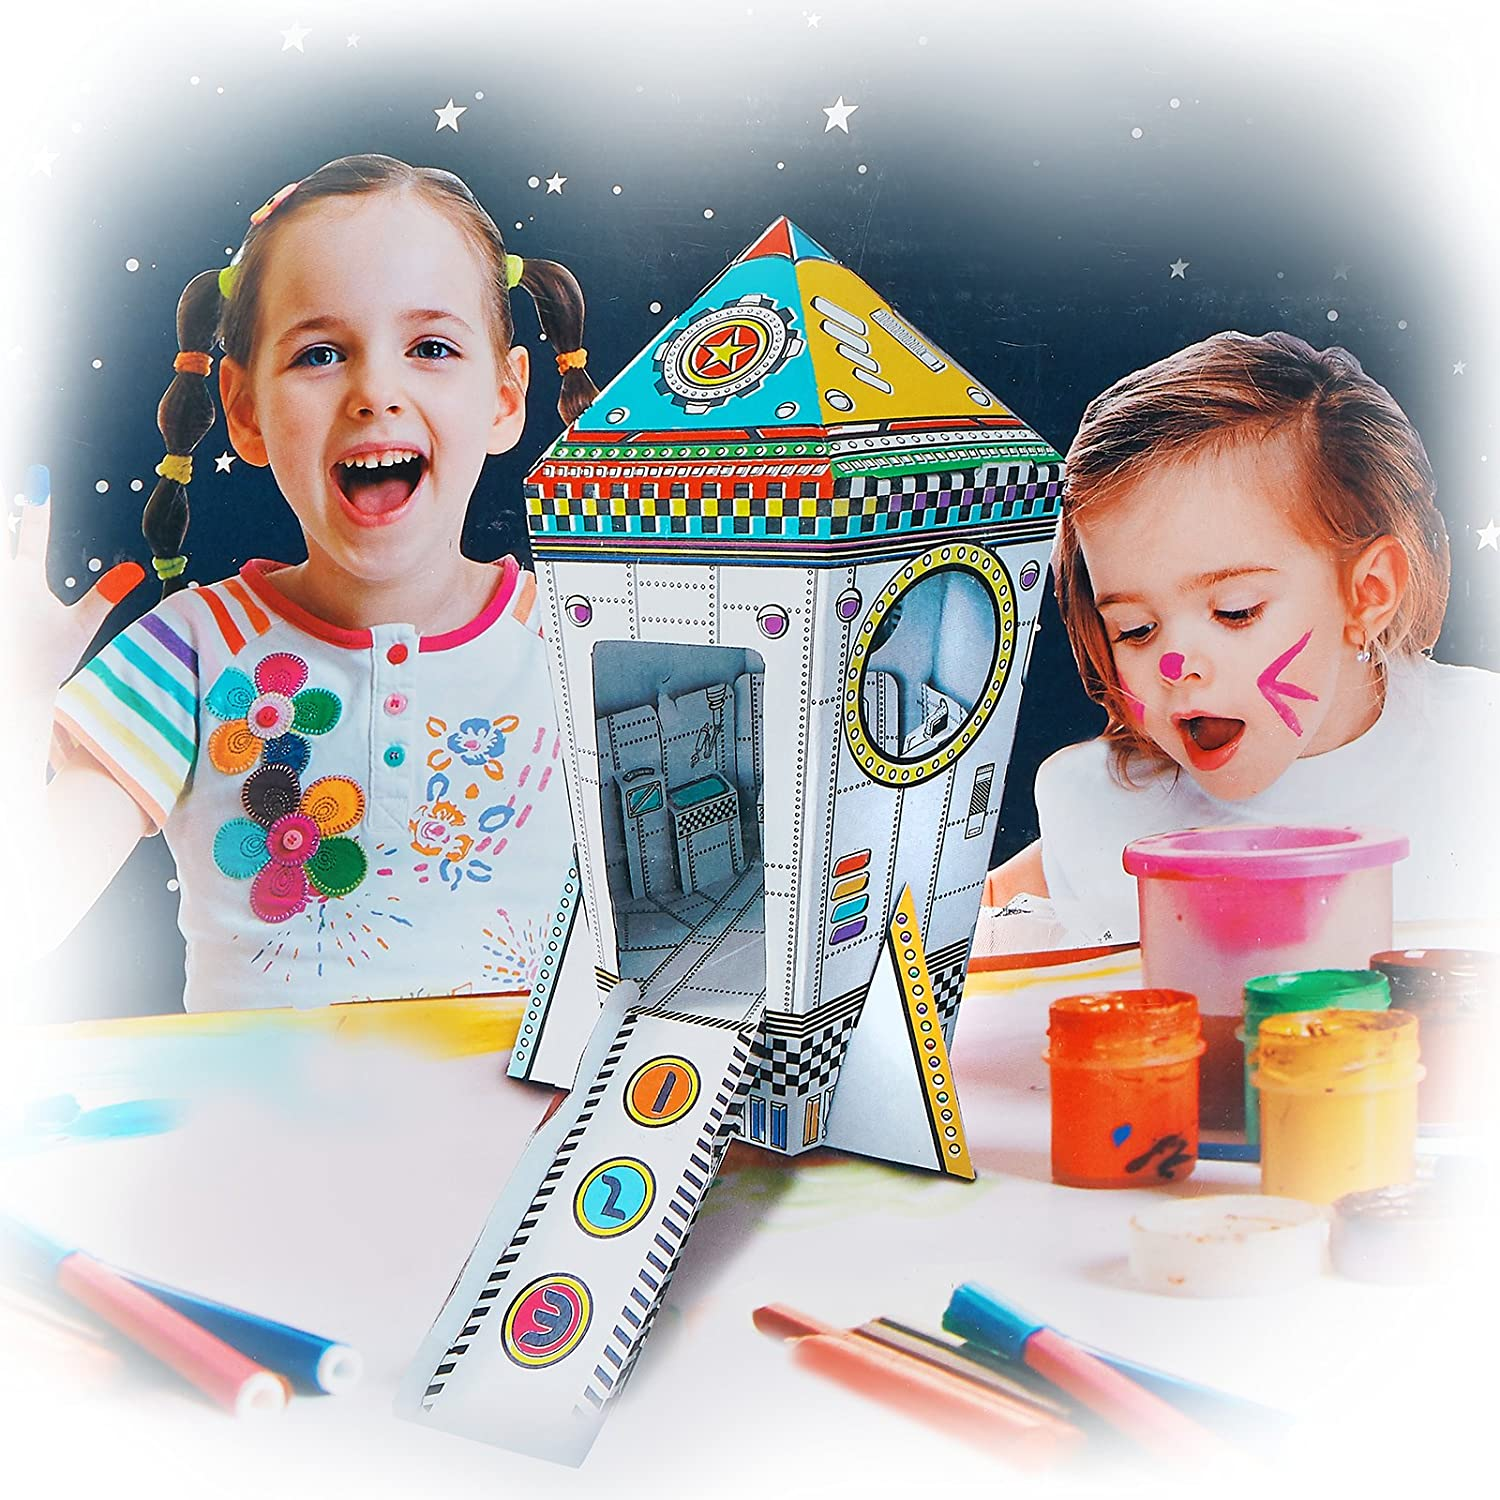 My Mini Rocket Ship Cardboard Playhouse for Kids to Color, Create your Own Indoor Fort, Life Size, Foldable for Easy Storage, by Spiritoy